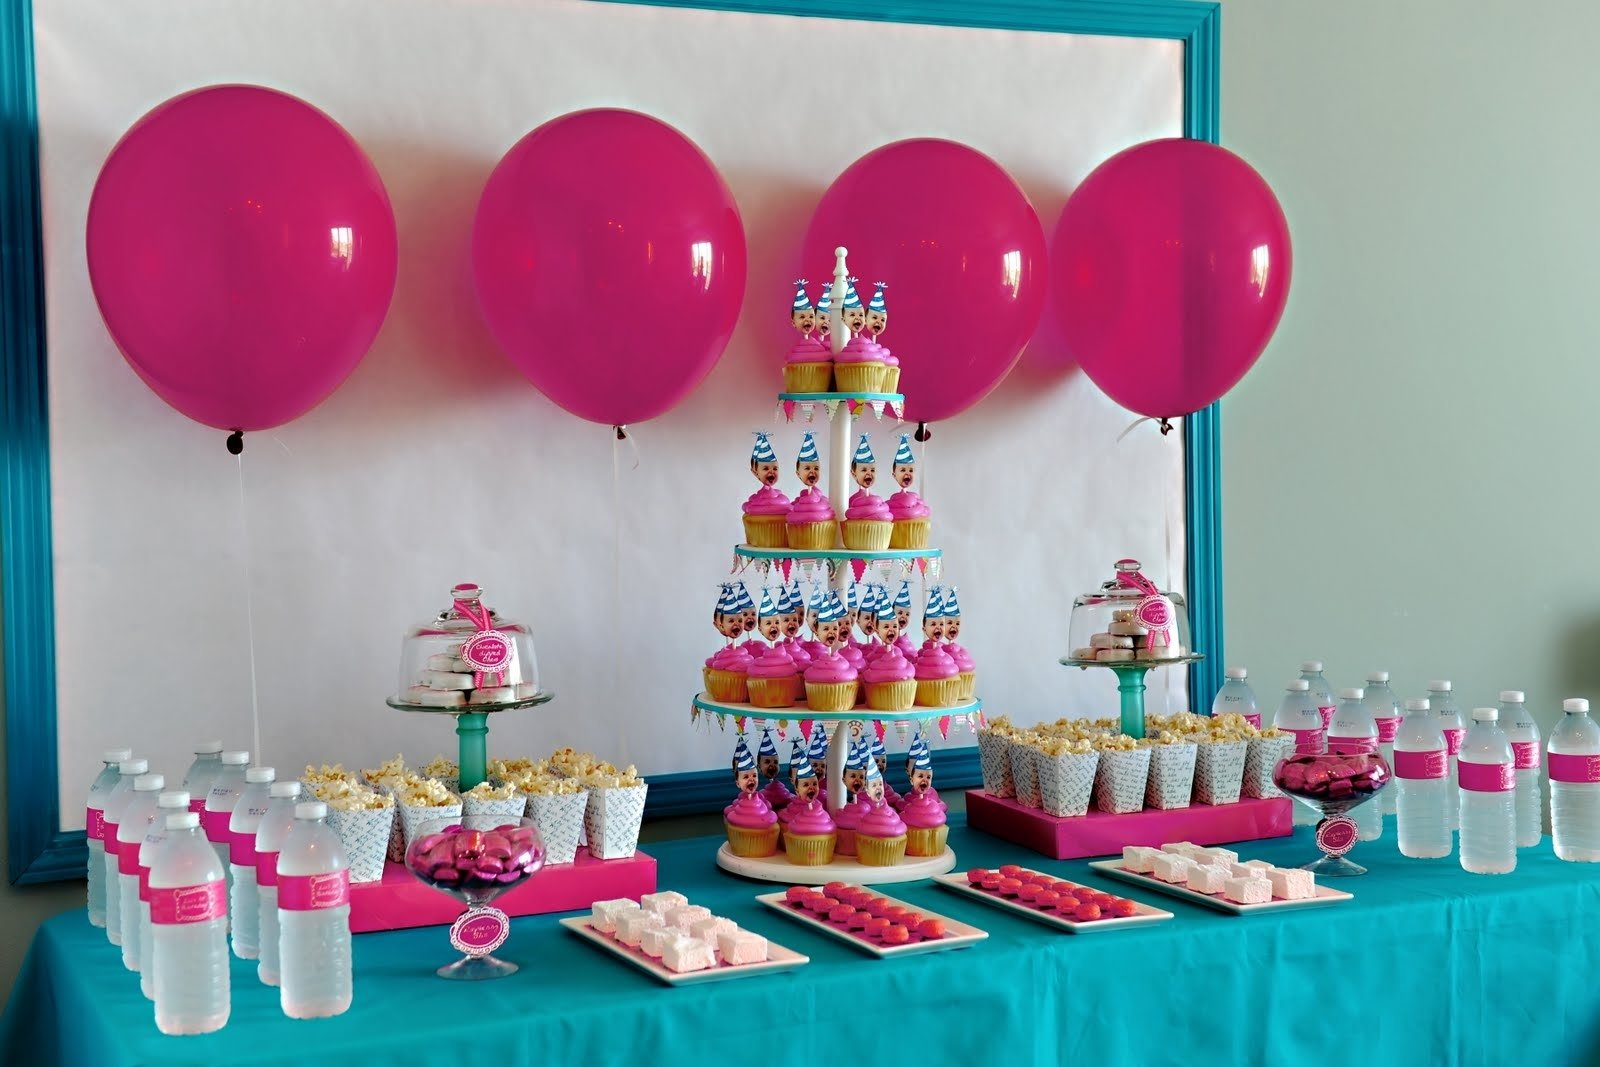 10 Trendy 7 Year Old Girl Birthday Party Ideas elle belle creative one year old in a flash the dessert table 10 2021